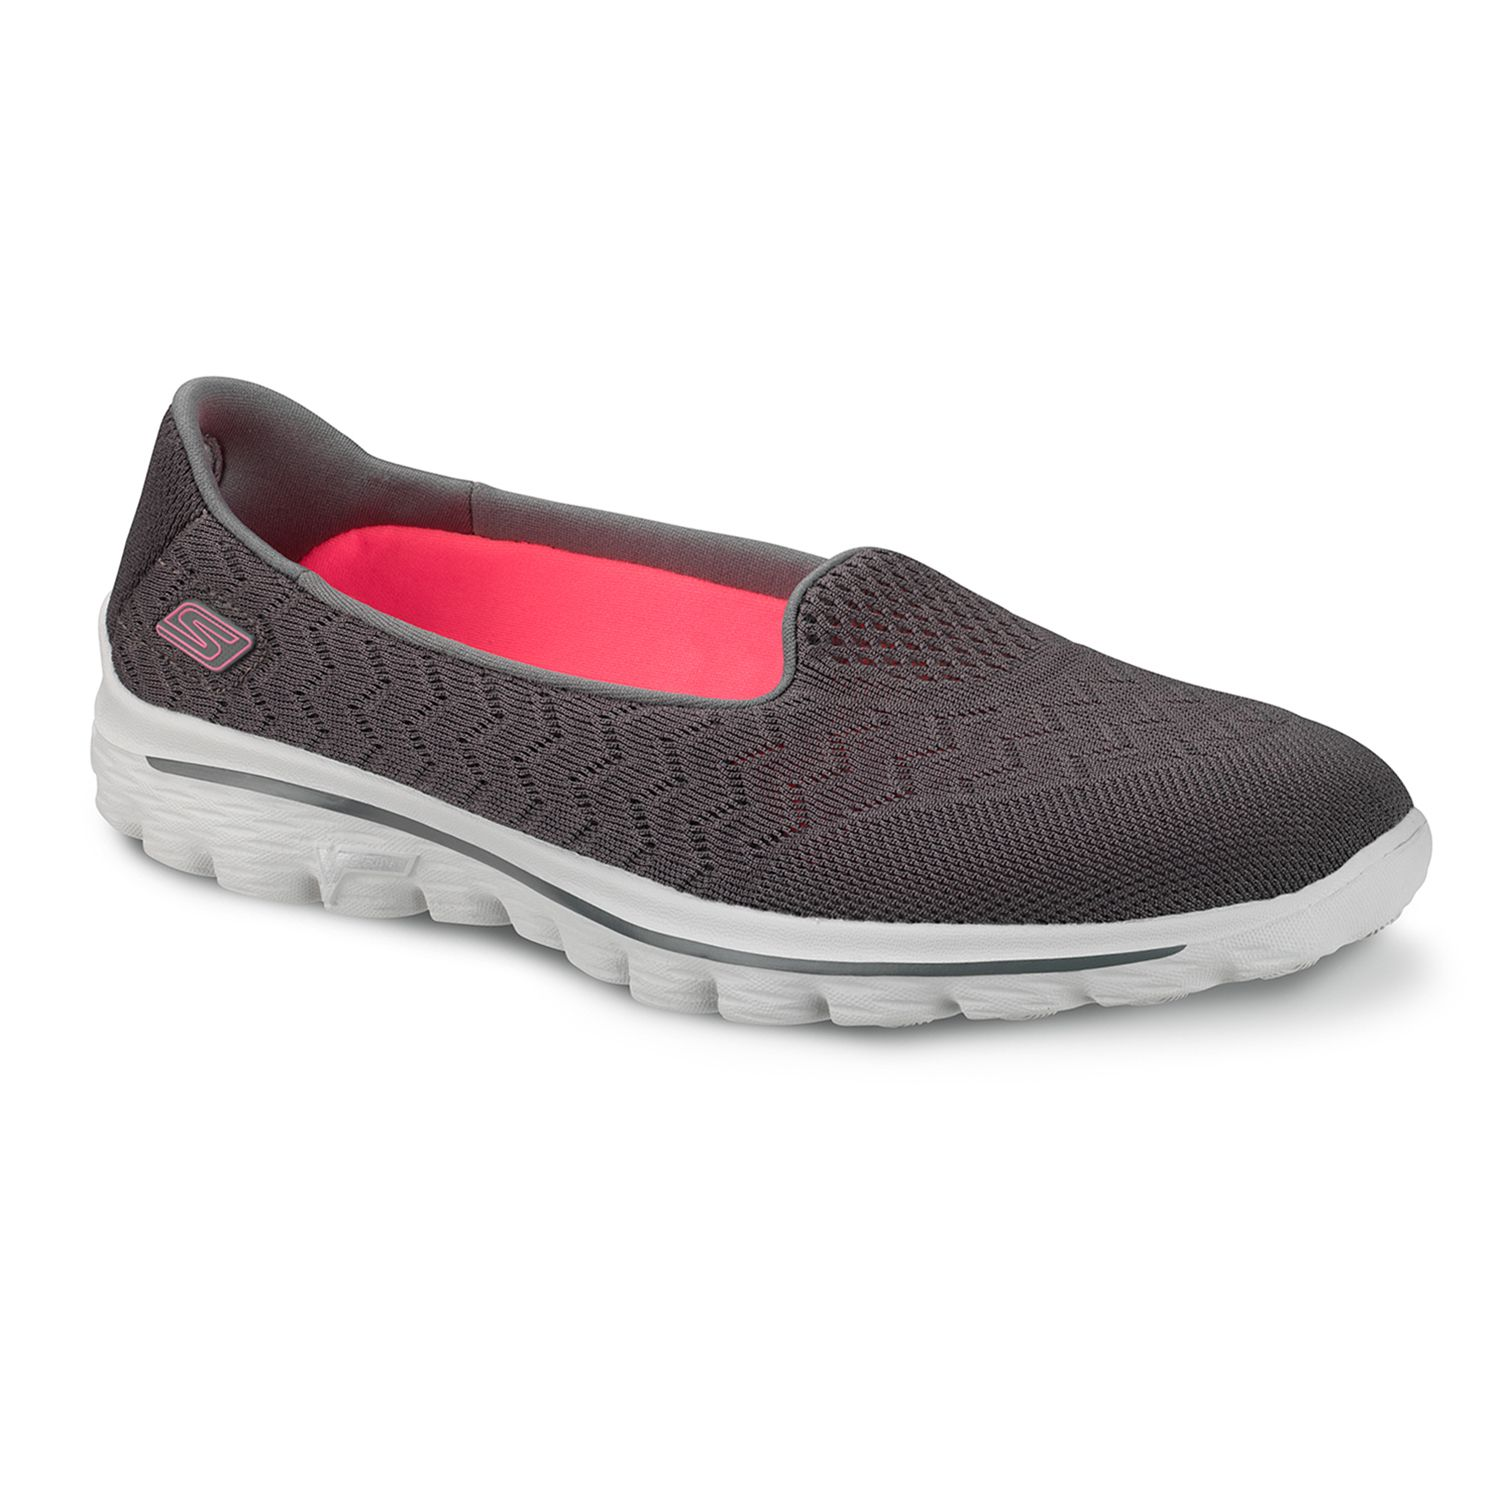 SKECHERS Performance Go Walk 2 Axis SKU:8429129